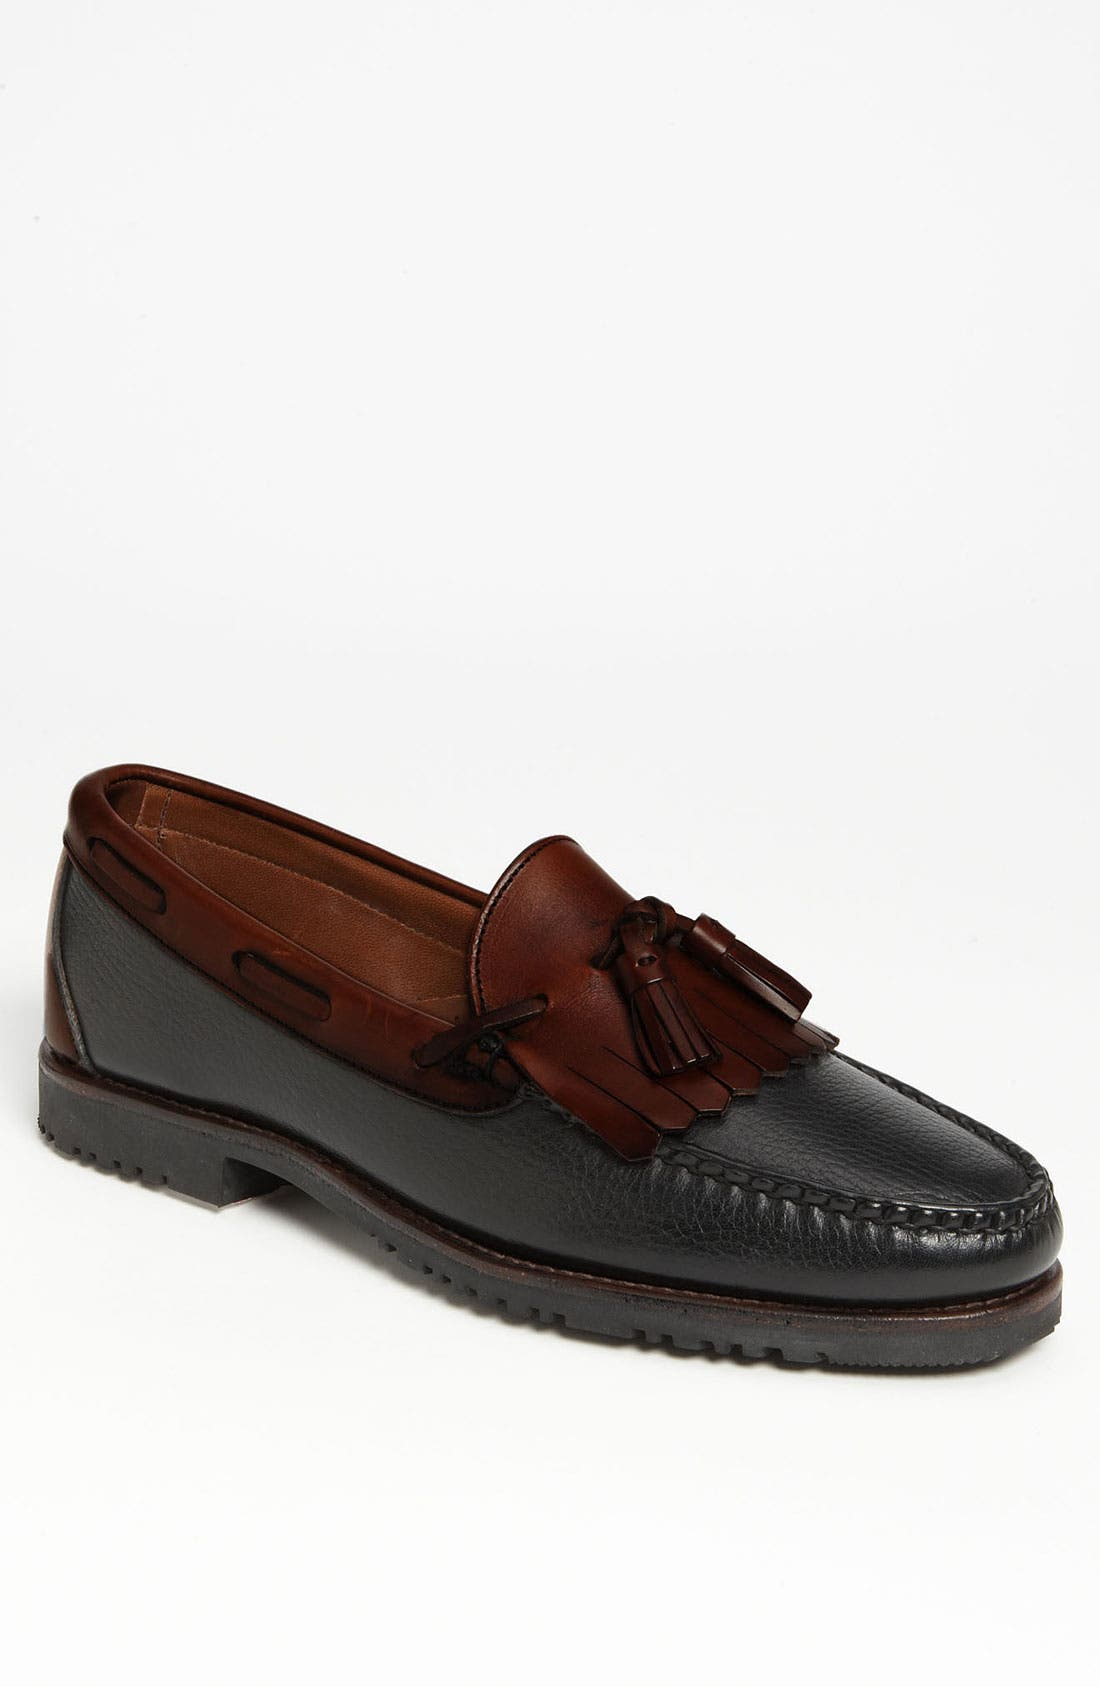 Main Image - Allen Edmonds 'Nashua' Tassel Loafer (Men)